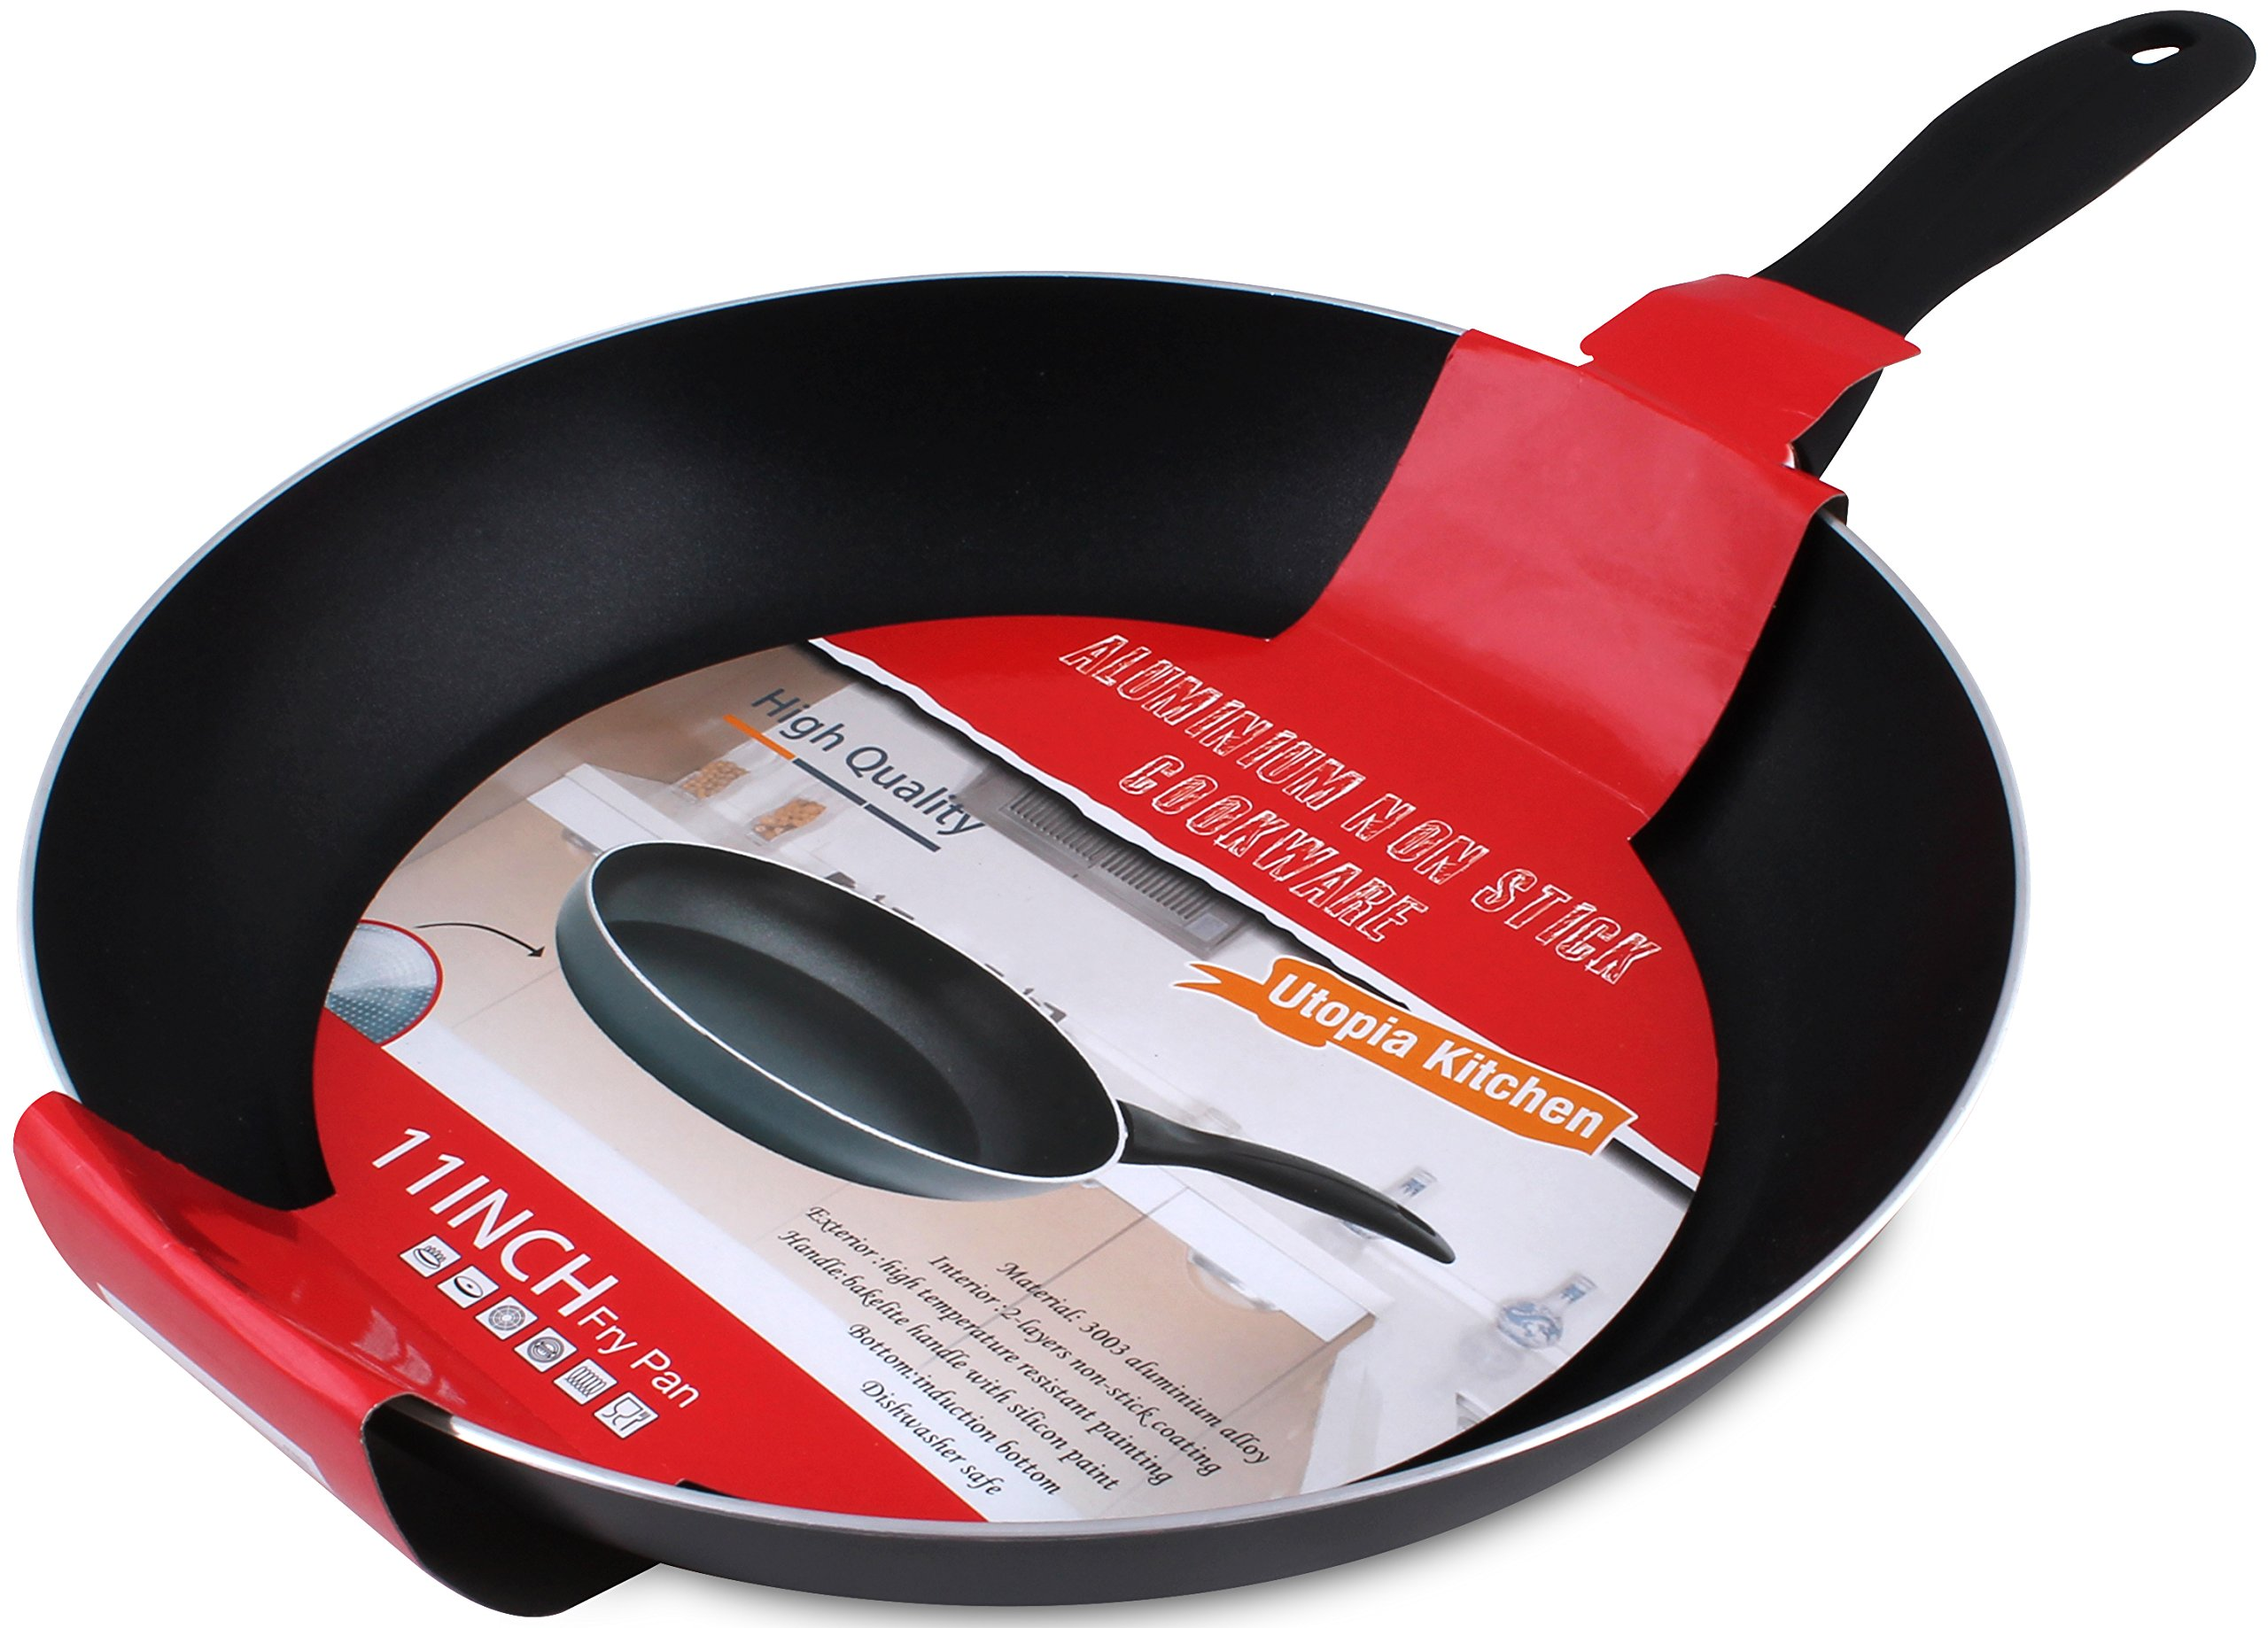 Induction Bottom Aluminum Nonstick Frying-Pan Grey Fry Pan - 11 inches Dishwasher Safe Cookware - by Utopia Kitchen by Utopia Kitchen (Image #2)